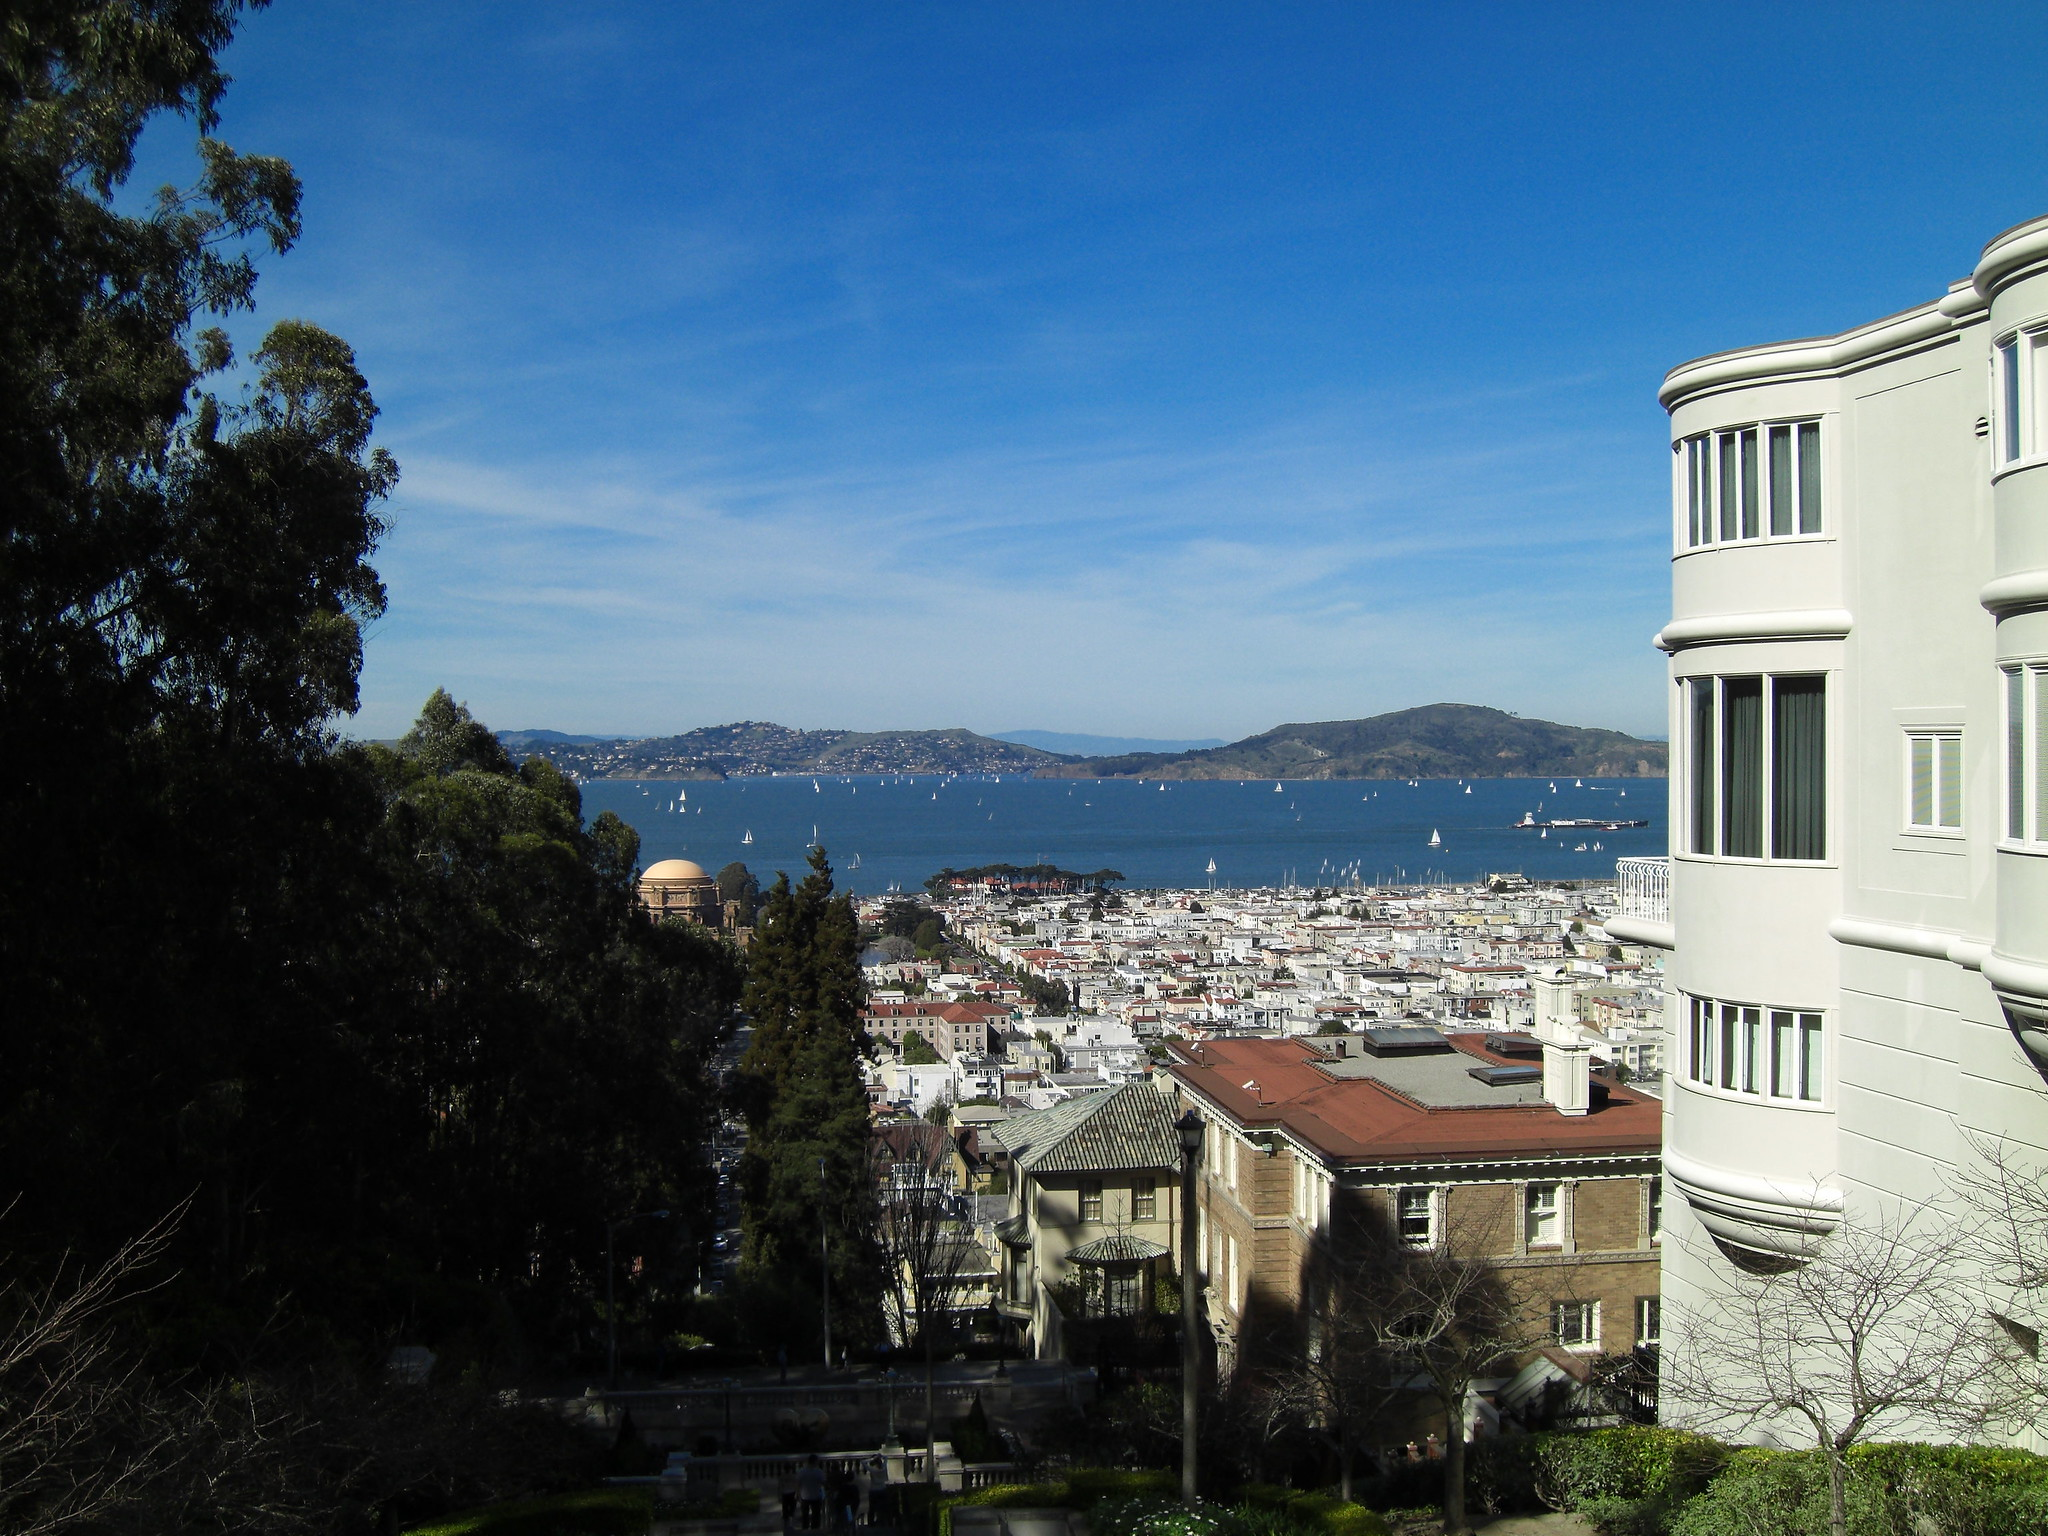 Home Prices Soar Across Bay Area Since 2020